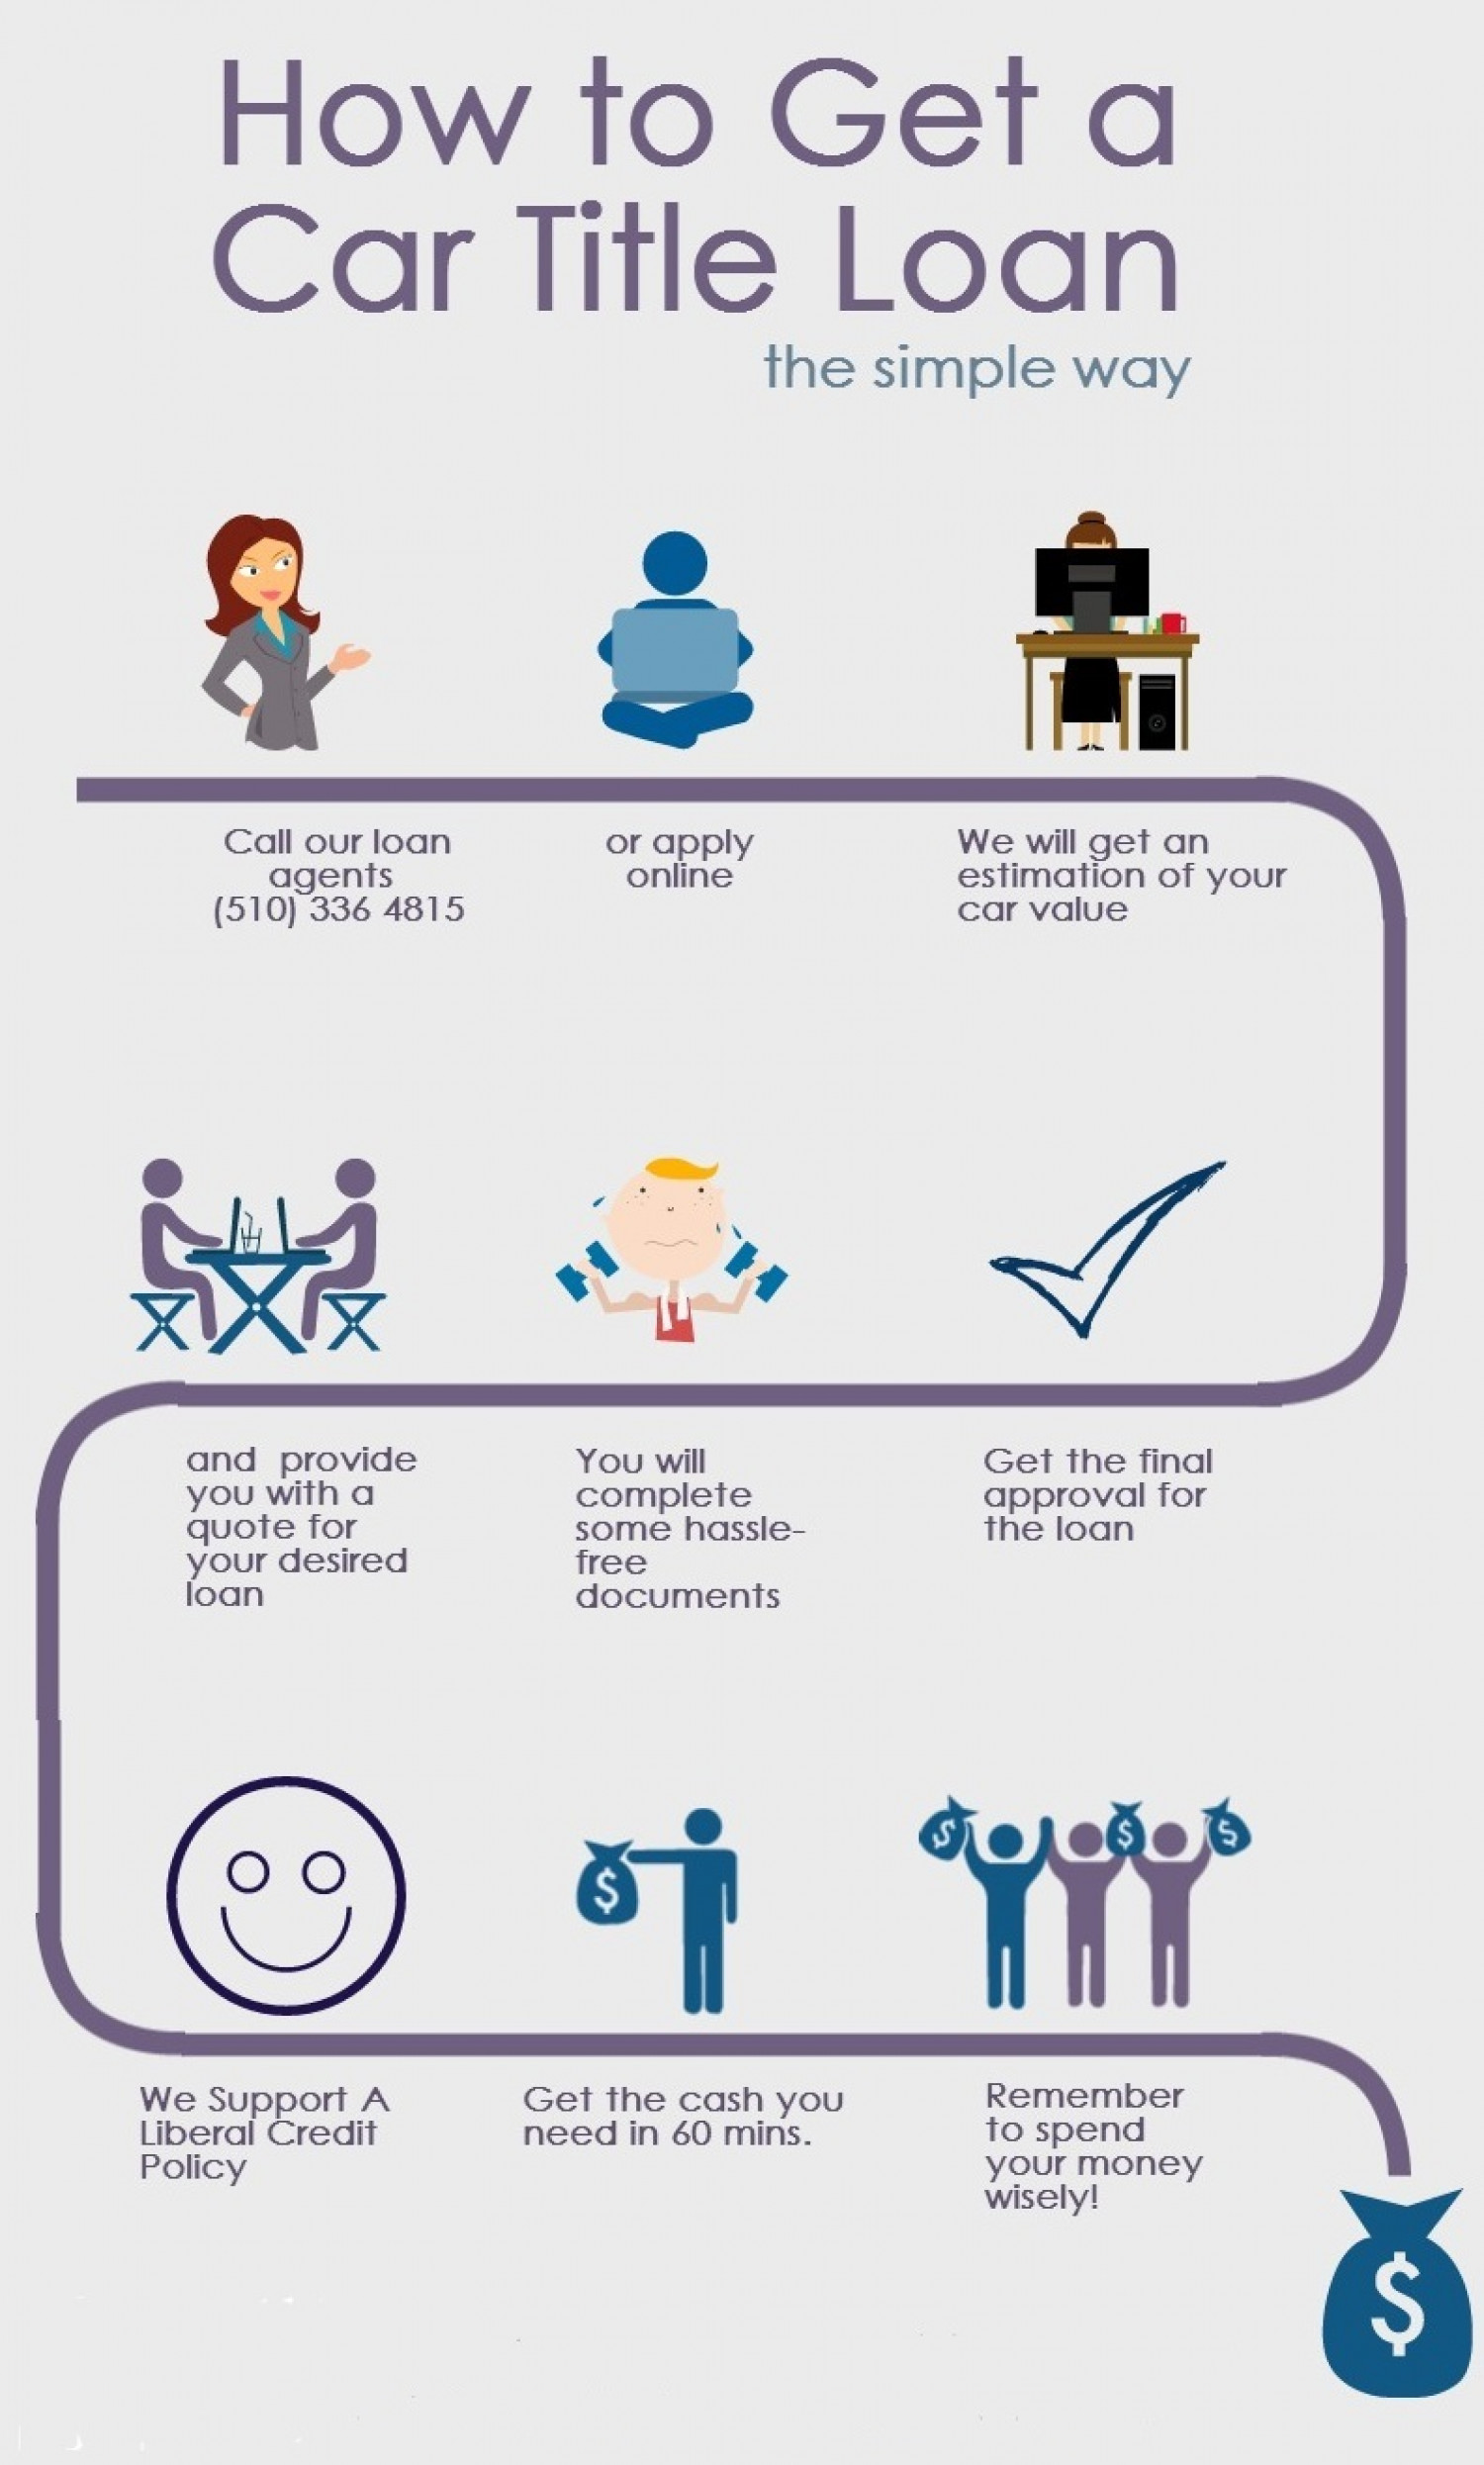 How to Get a Car Title Loan? Infographic